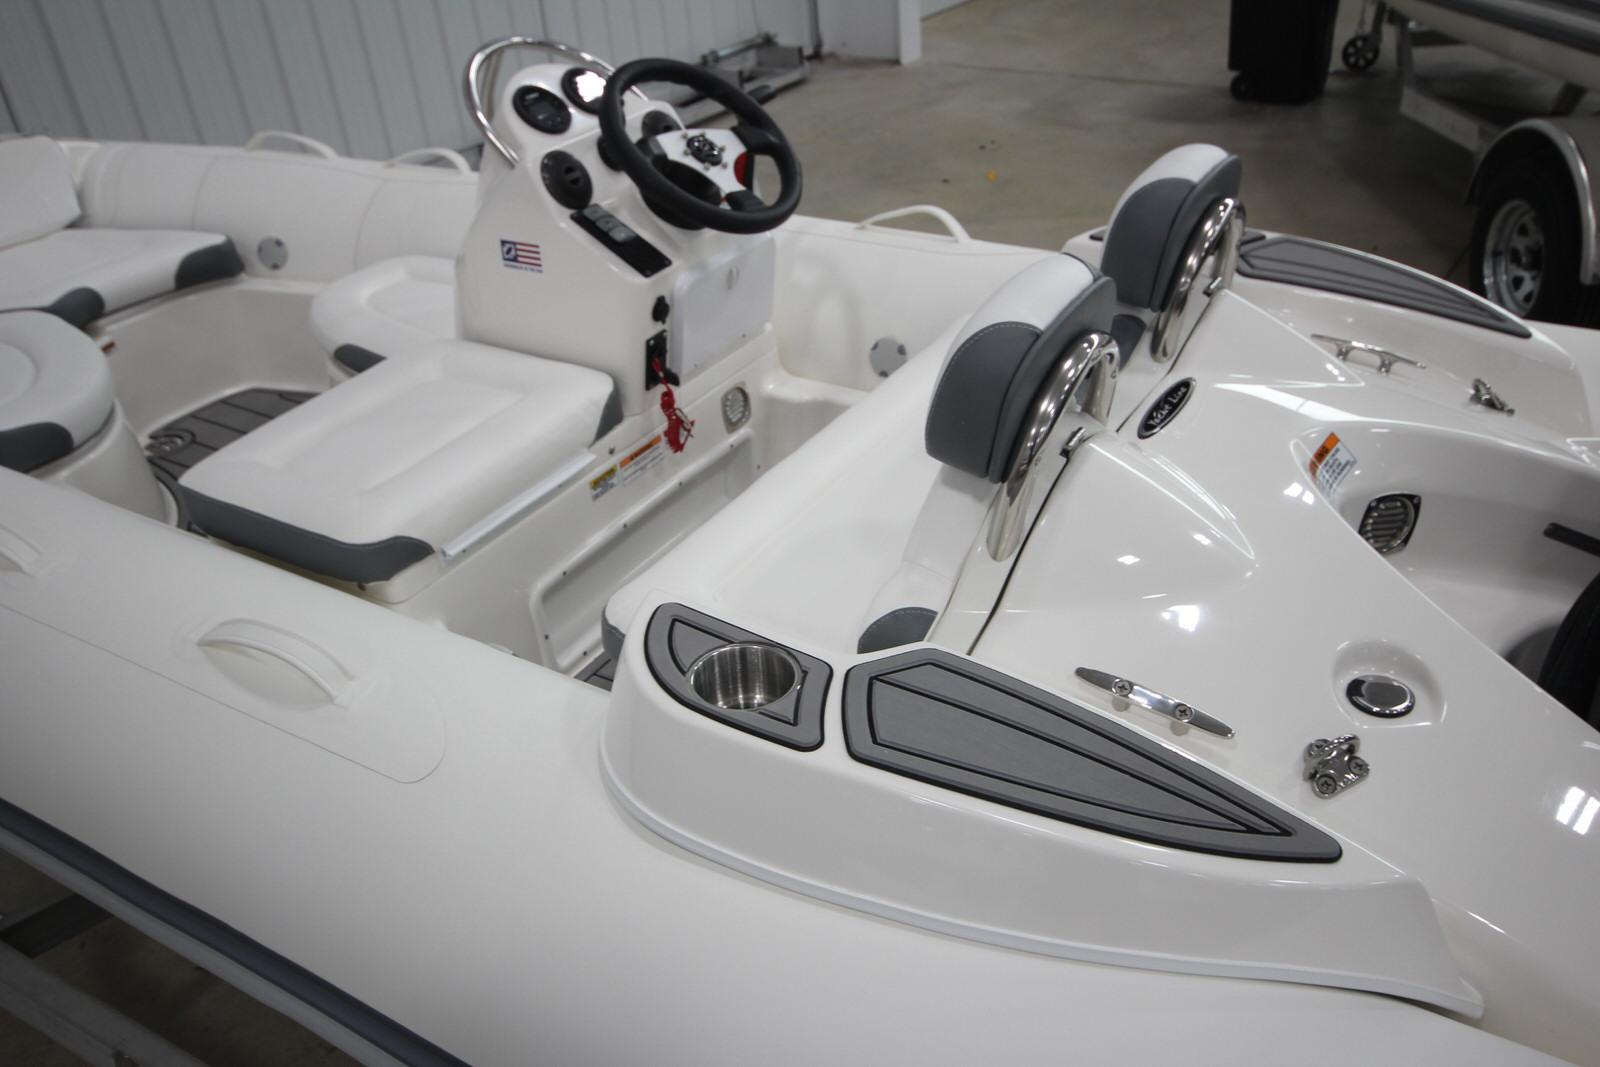 2022 Zodiac Yachtline 440 Deluxe NEO GL Edition 60hp On Order, Image 22